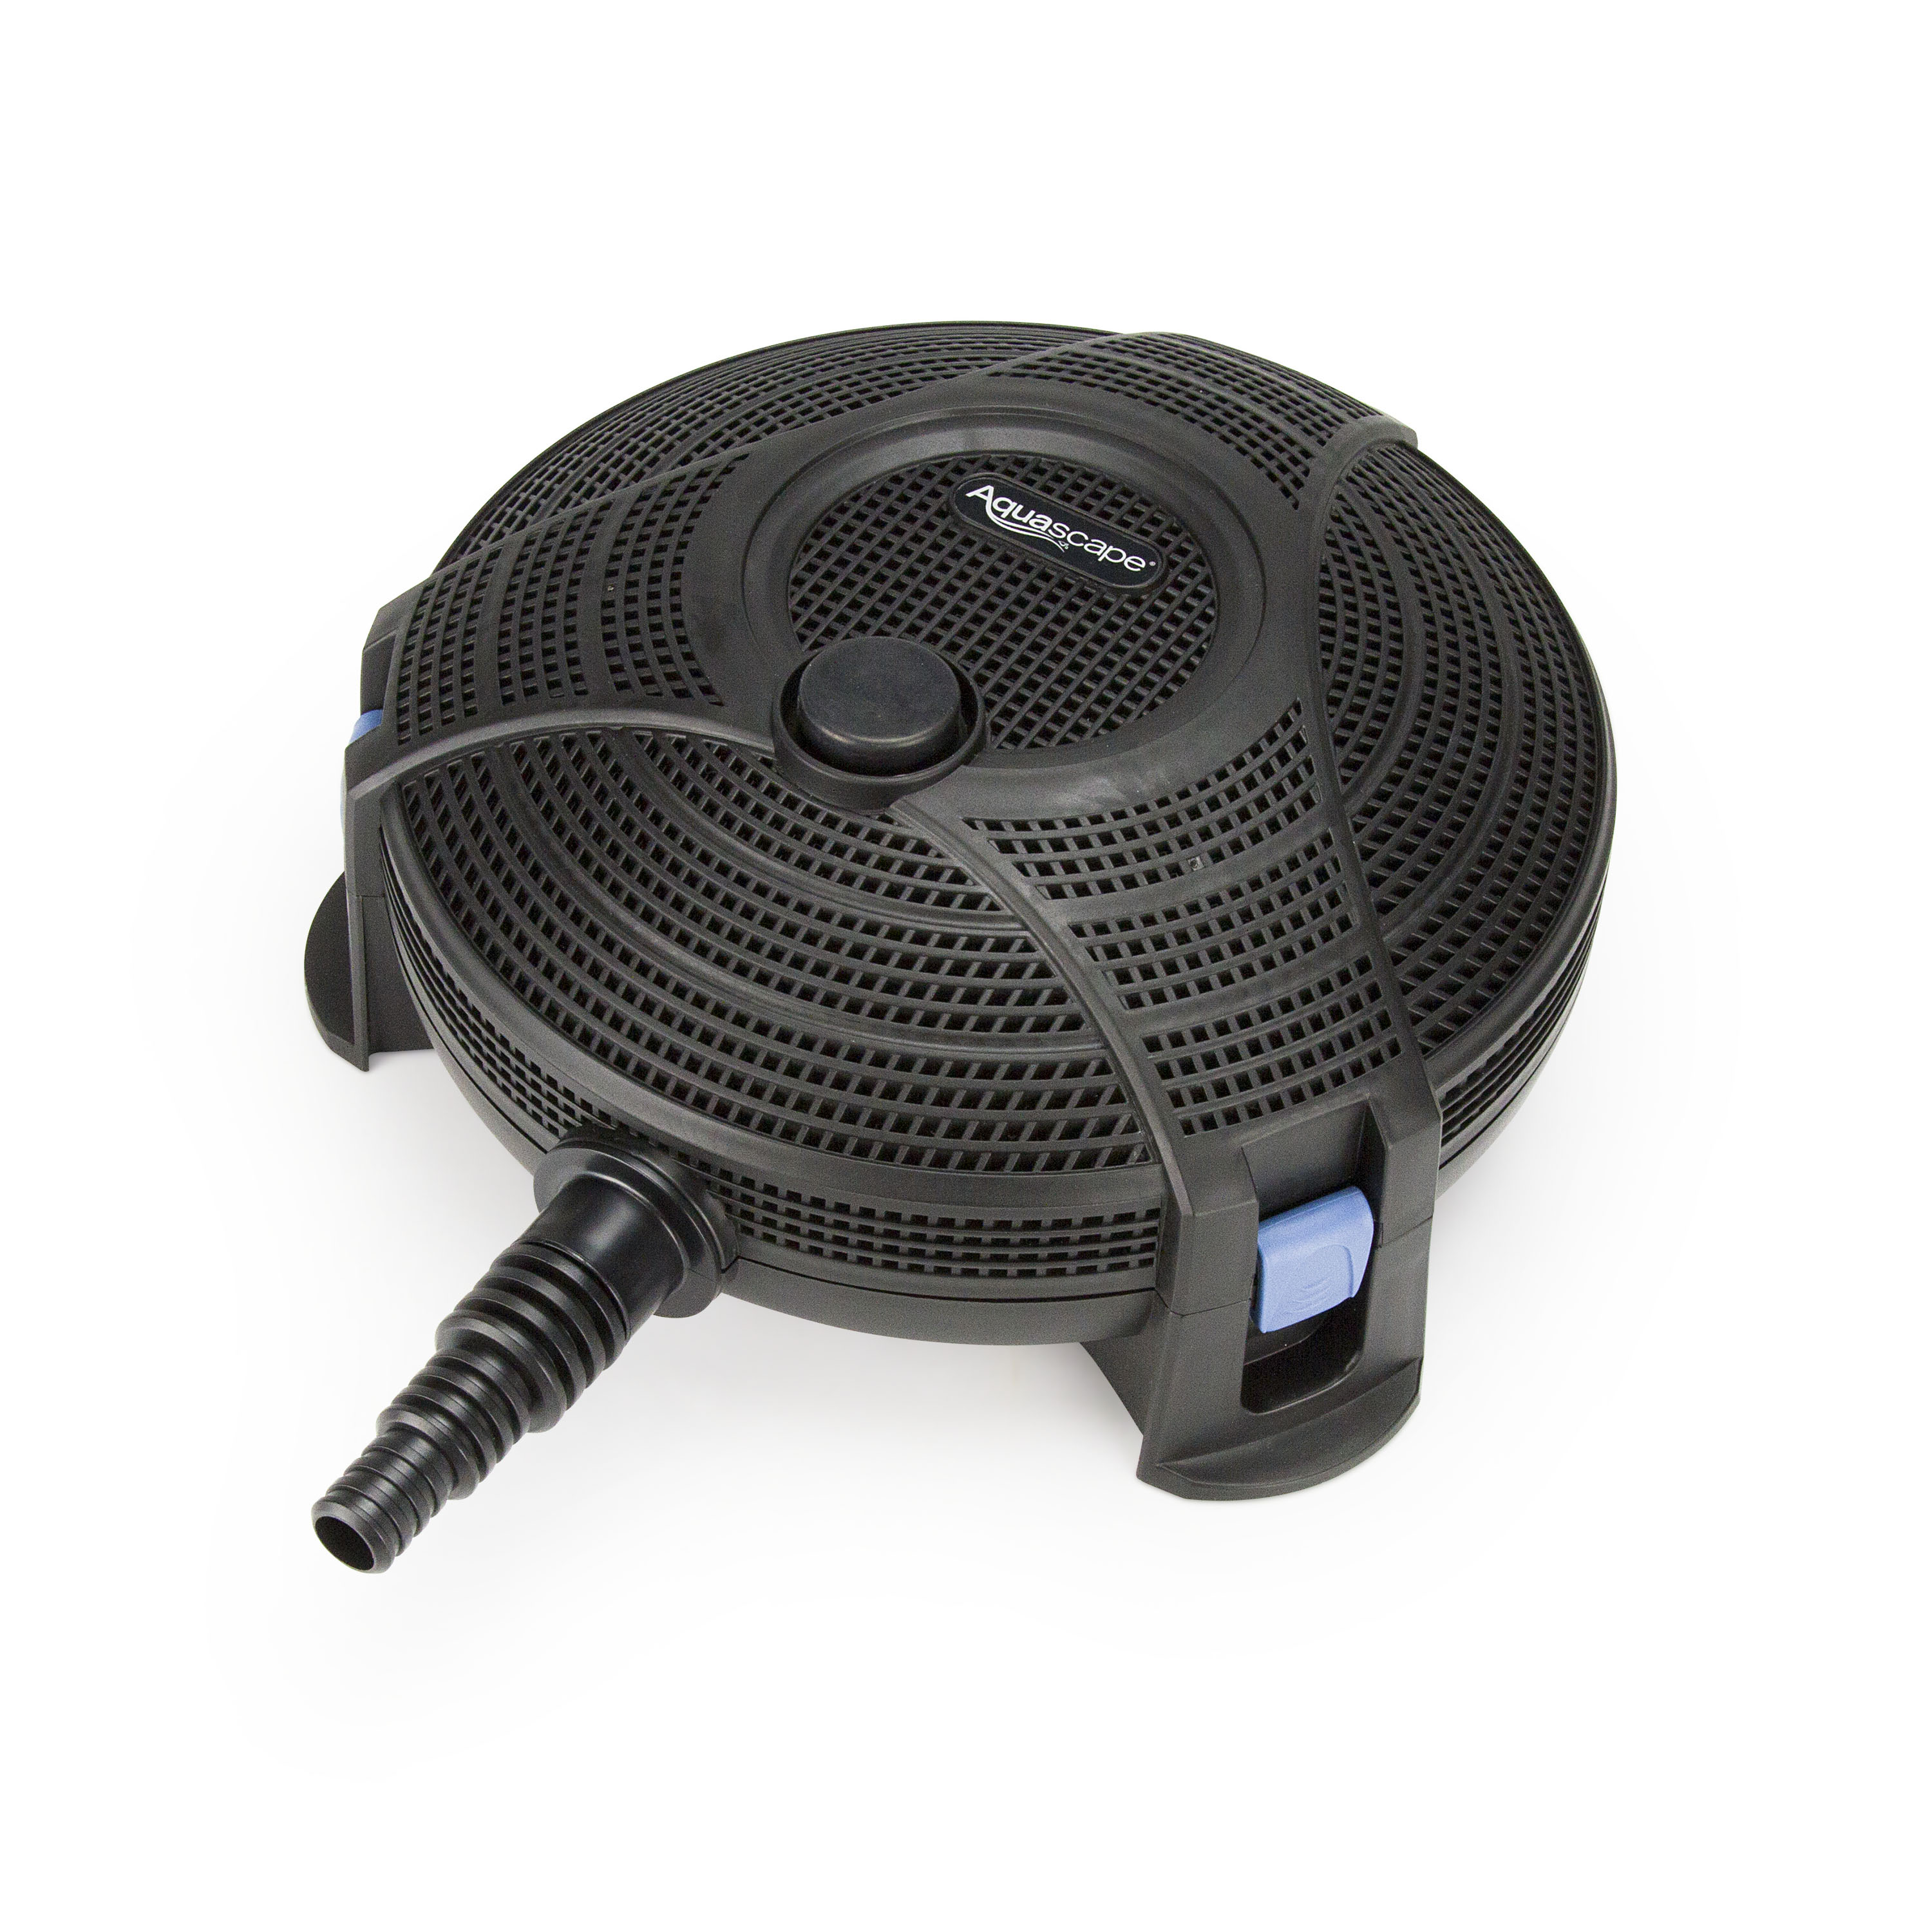 Aquascape submersible pond filter aquascapes for In line pond filter